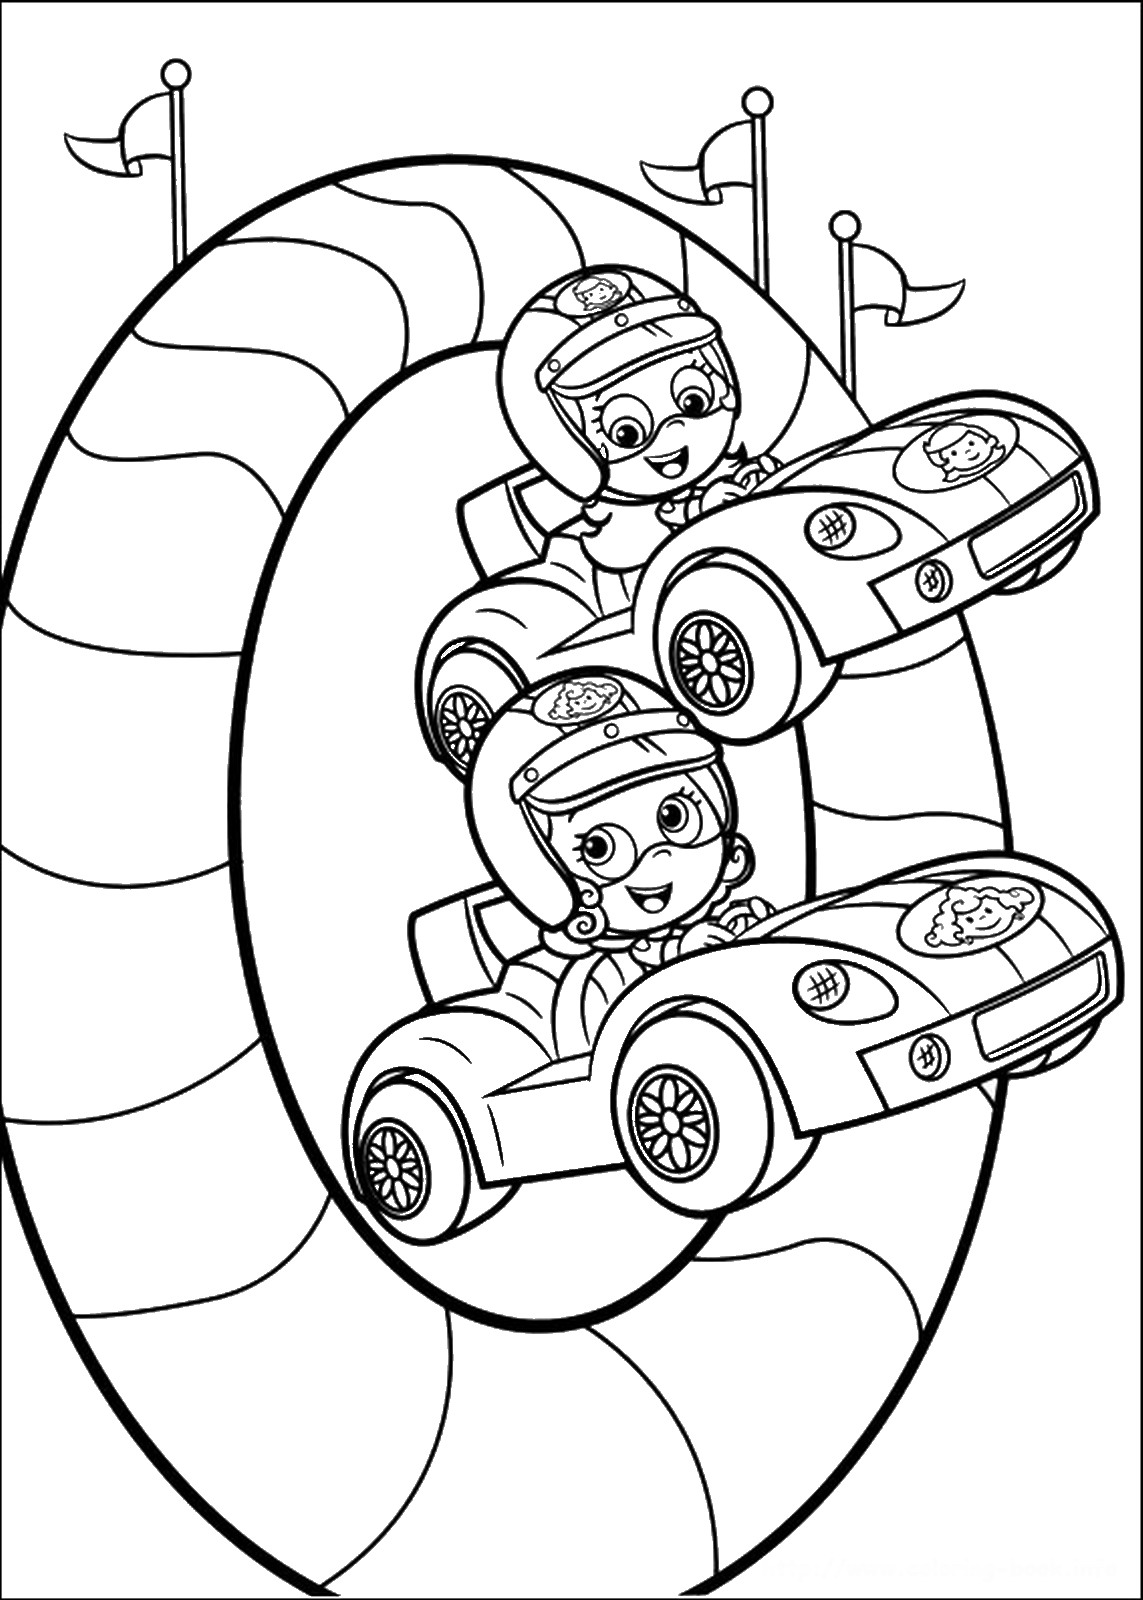 bubble guppies coloring page 25 free printable bubble guppies coloring pages page guppies bubble coloring